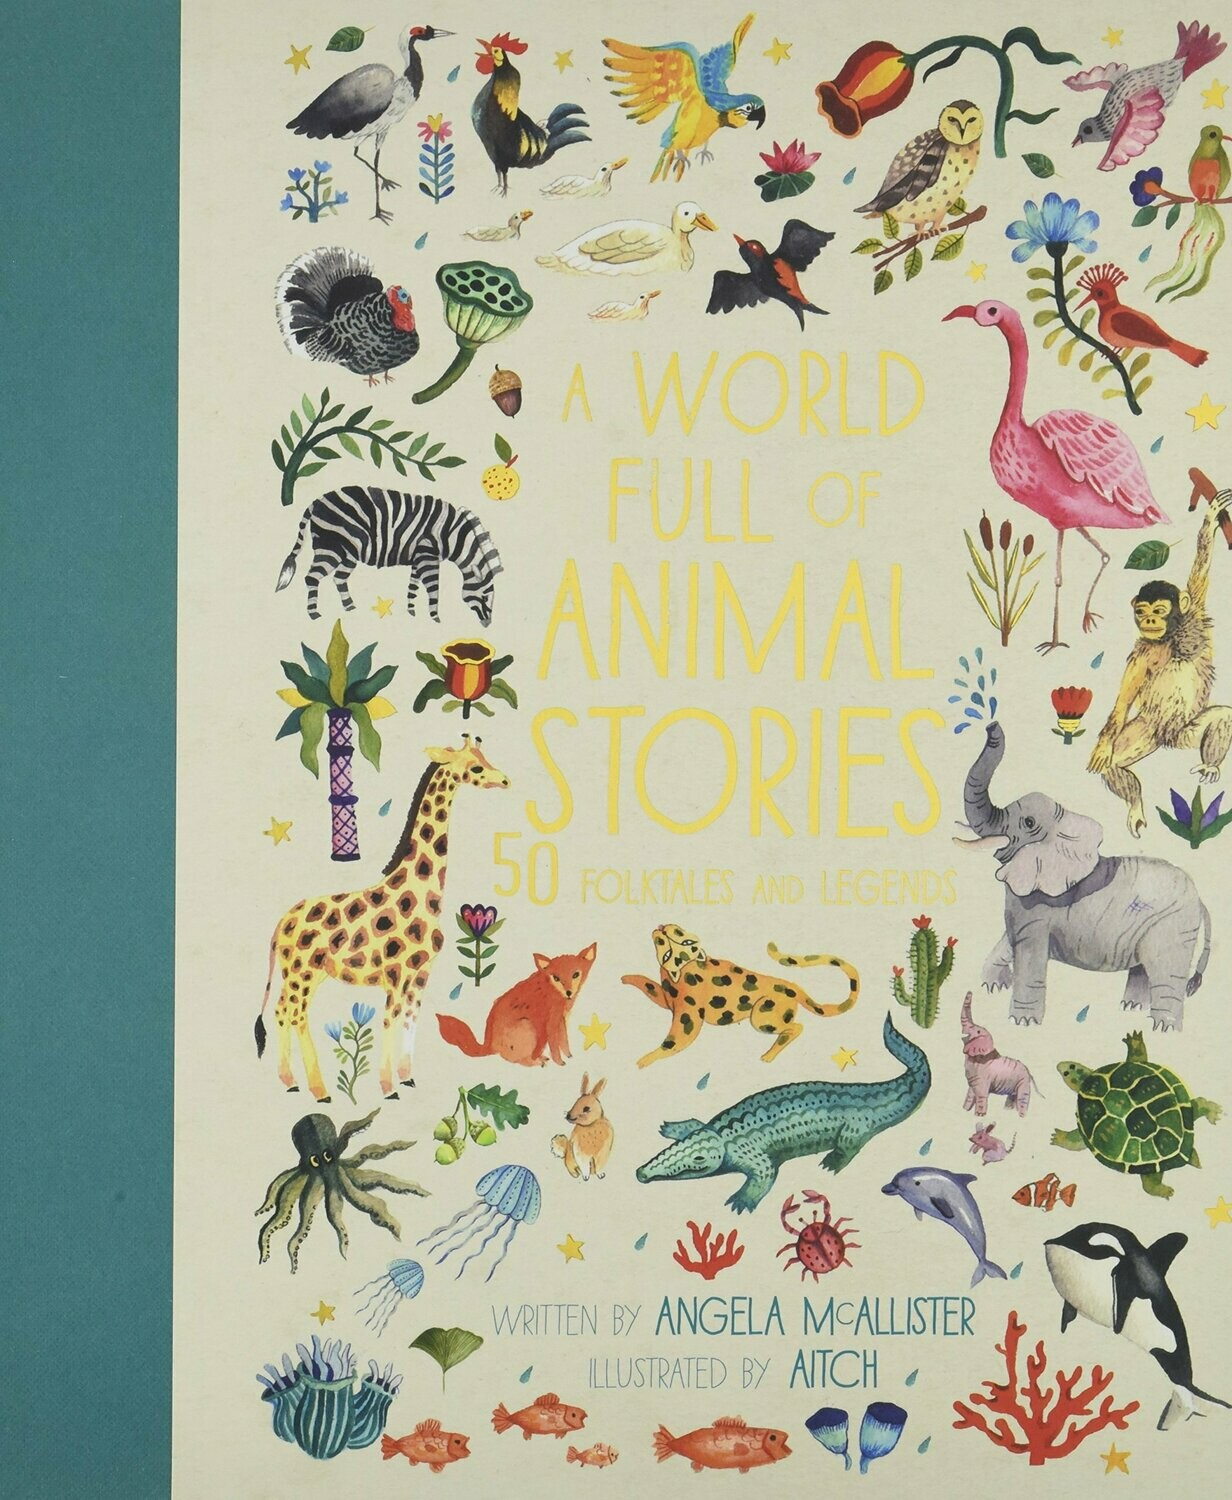 A World Full Of Animal Stories: 50 Folktales and Legends